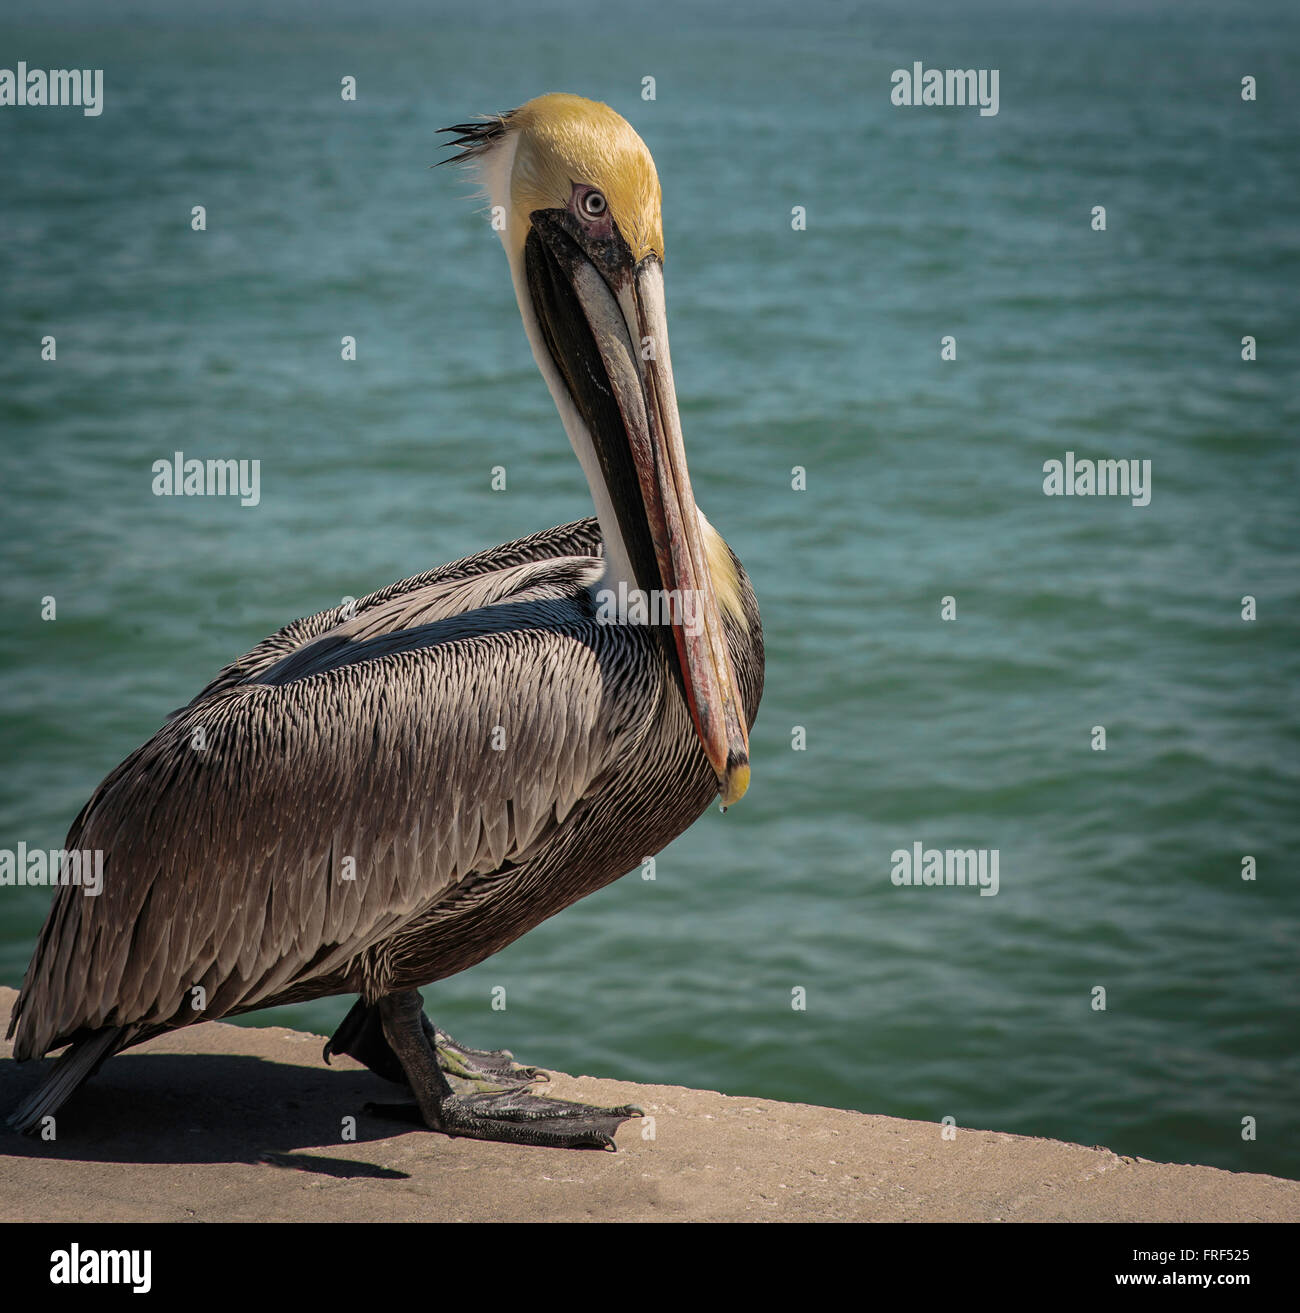 Pelican standing on a cement walk at water's edge Stock Photo